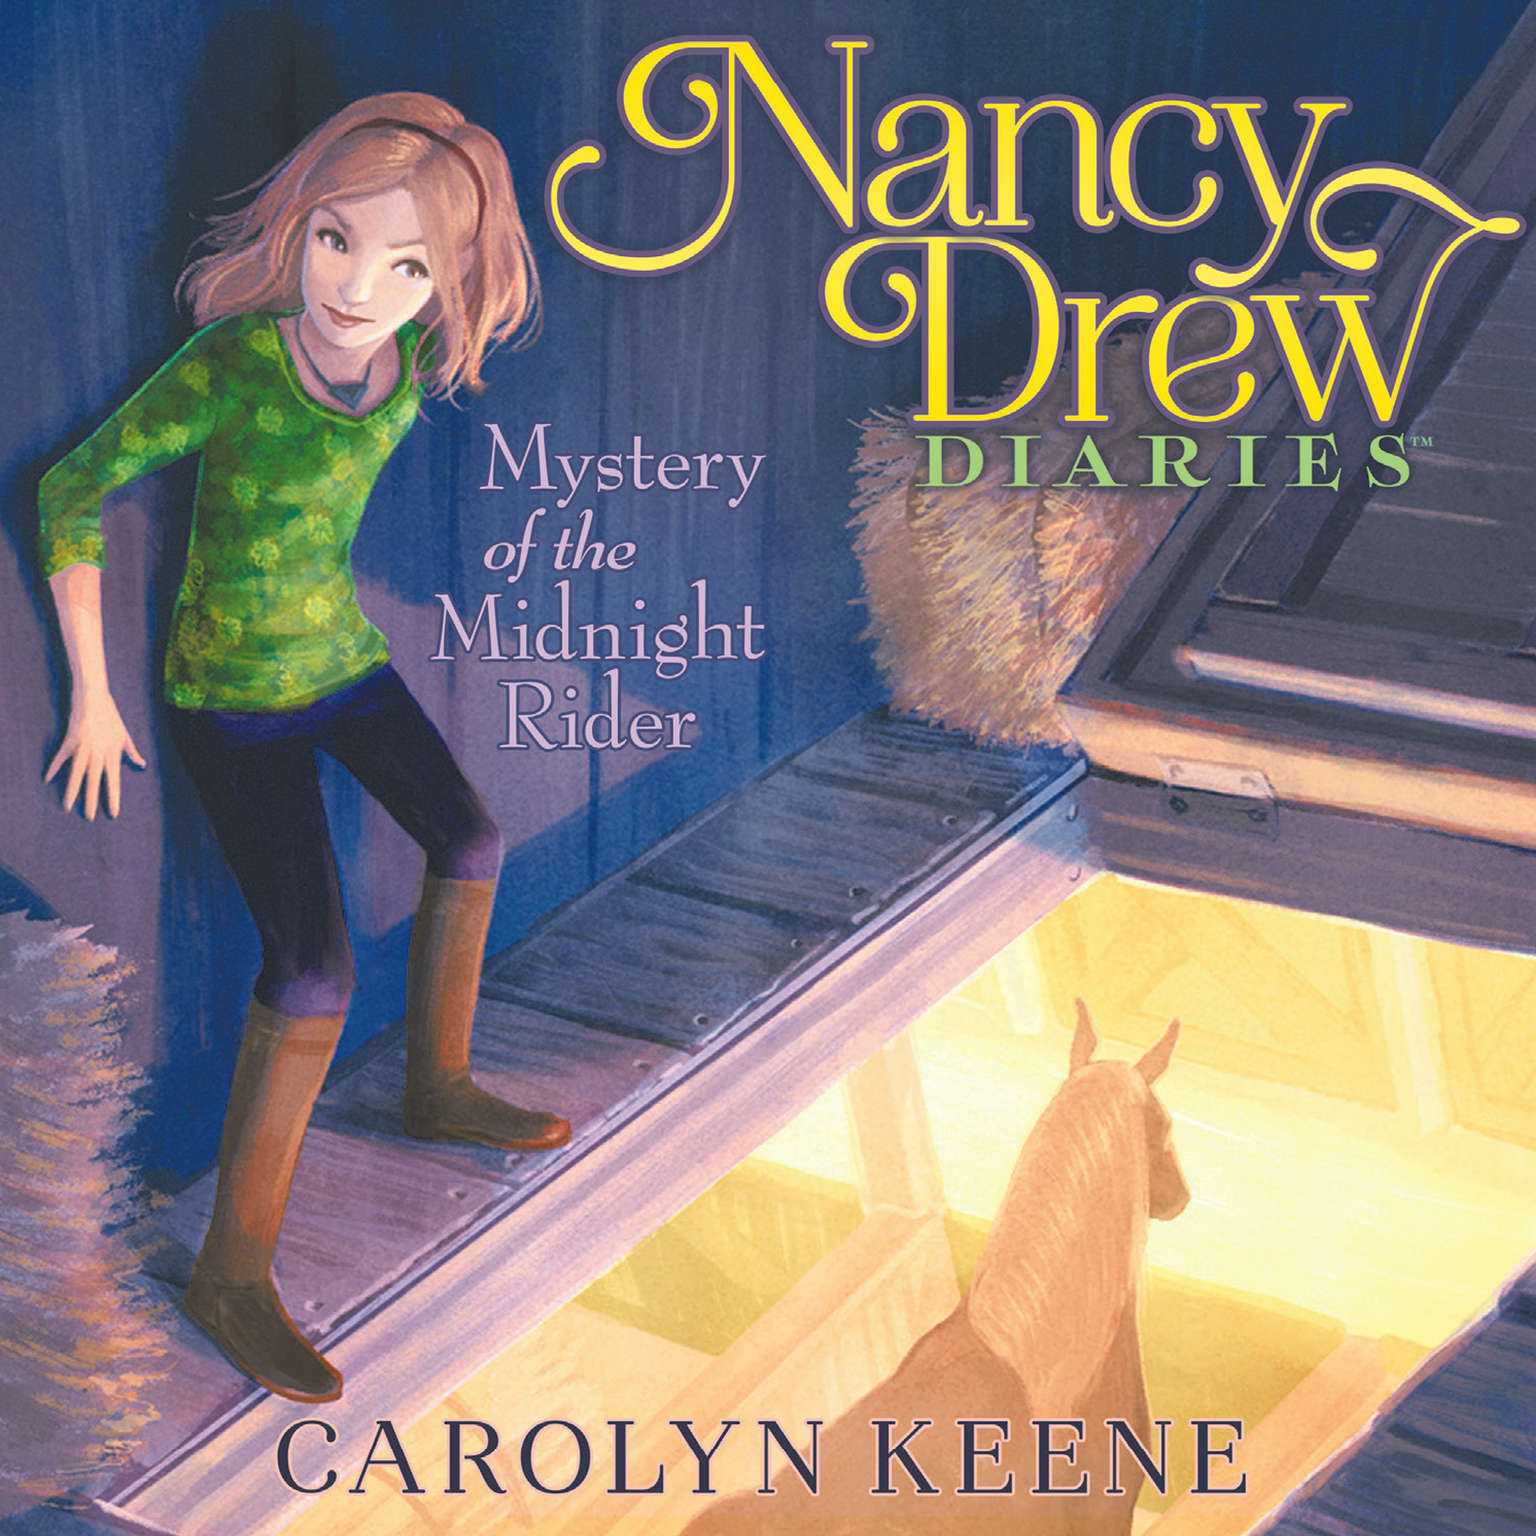 Mystery of the Midnight Rider Audiobook, by Carolyn Keene